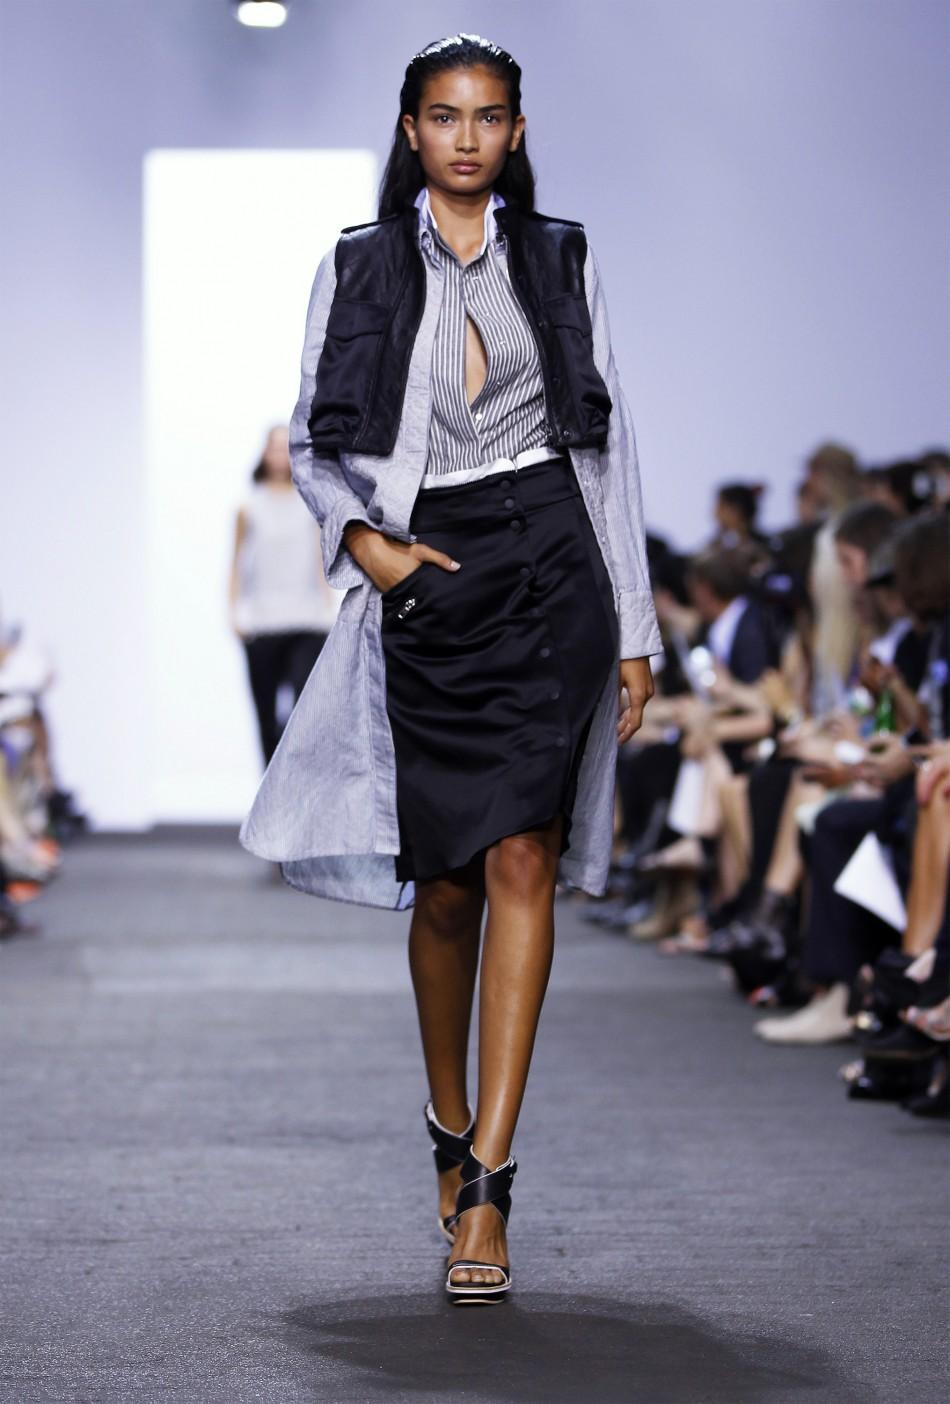 Rag & Bone Spring 2013 collection at New York Fashion Week